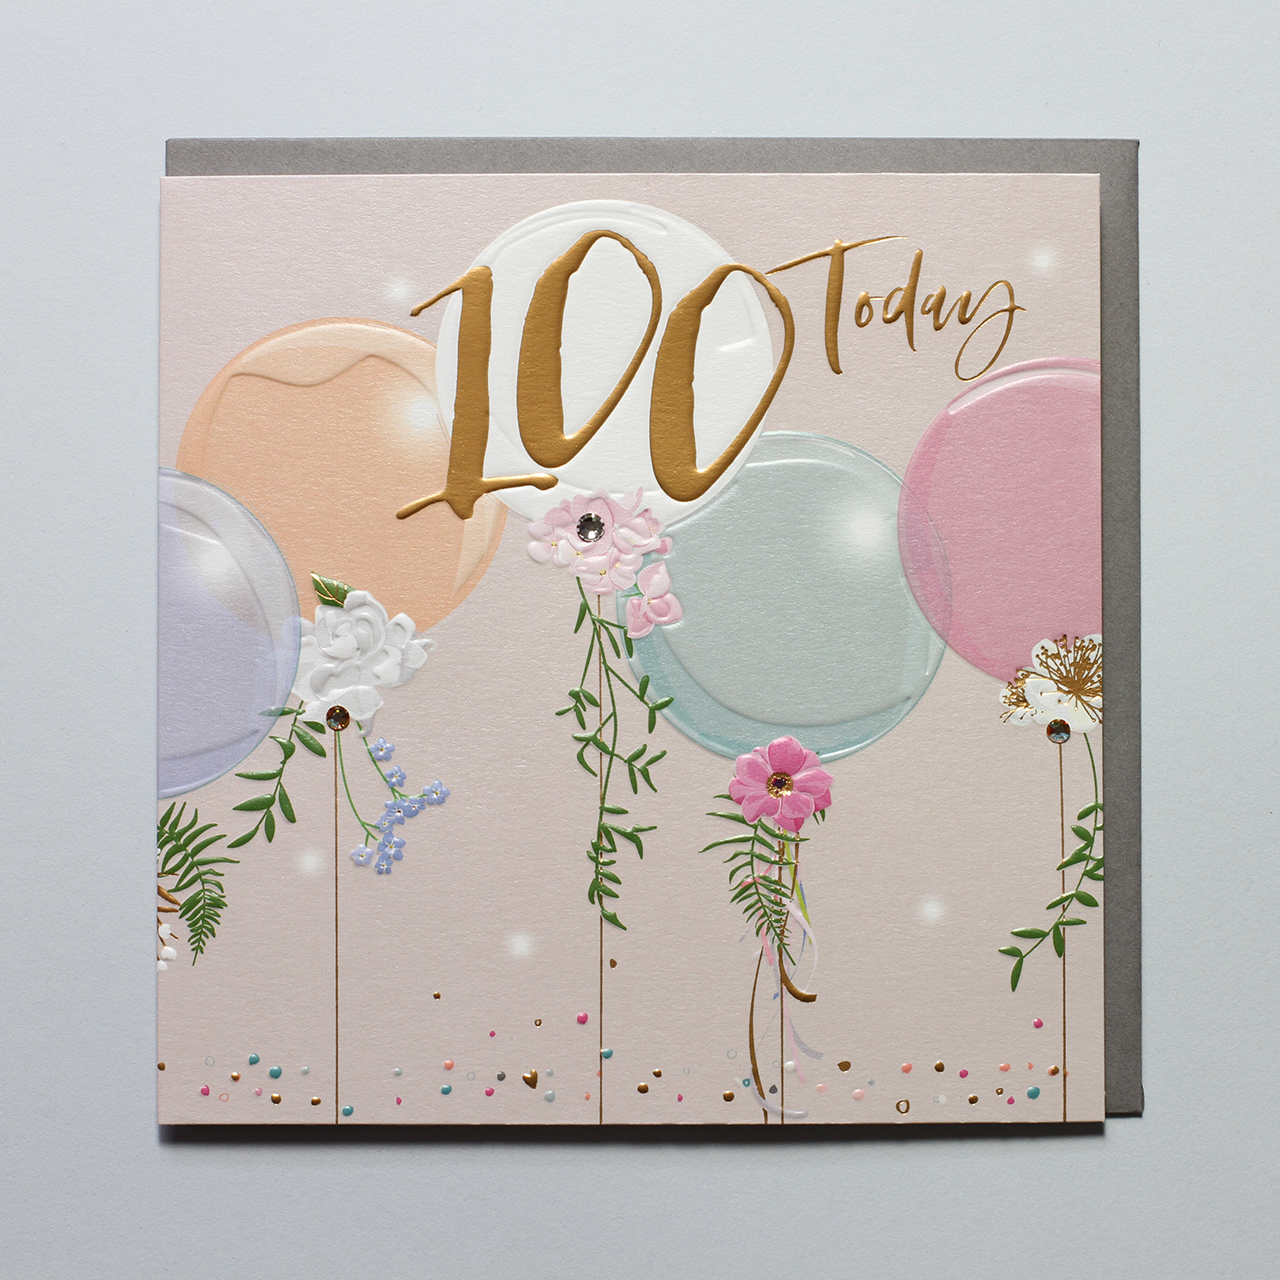 Belly Button Designs, 100th Birthday Balloons